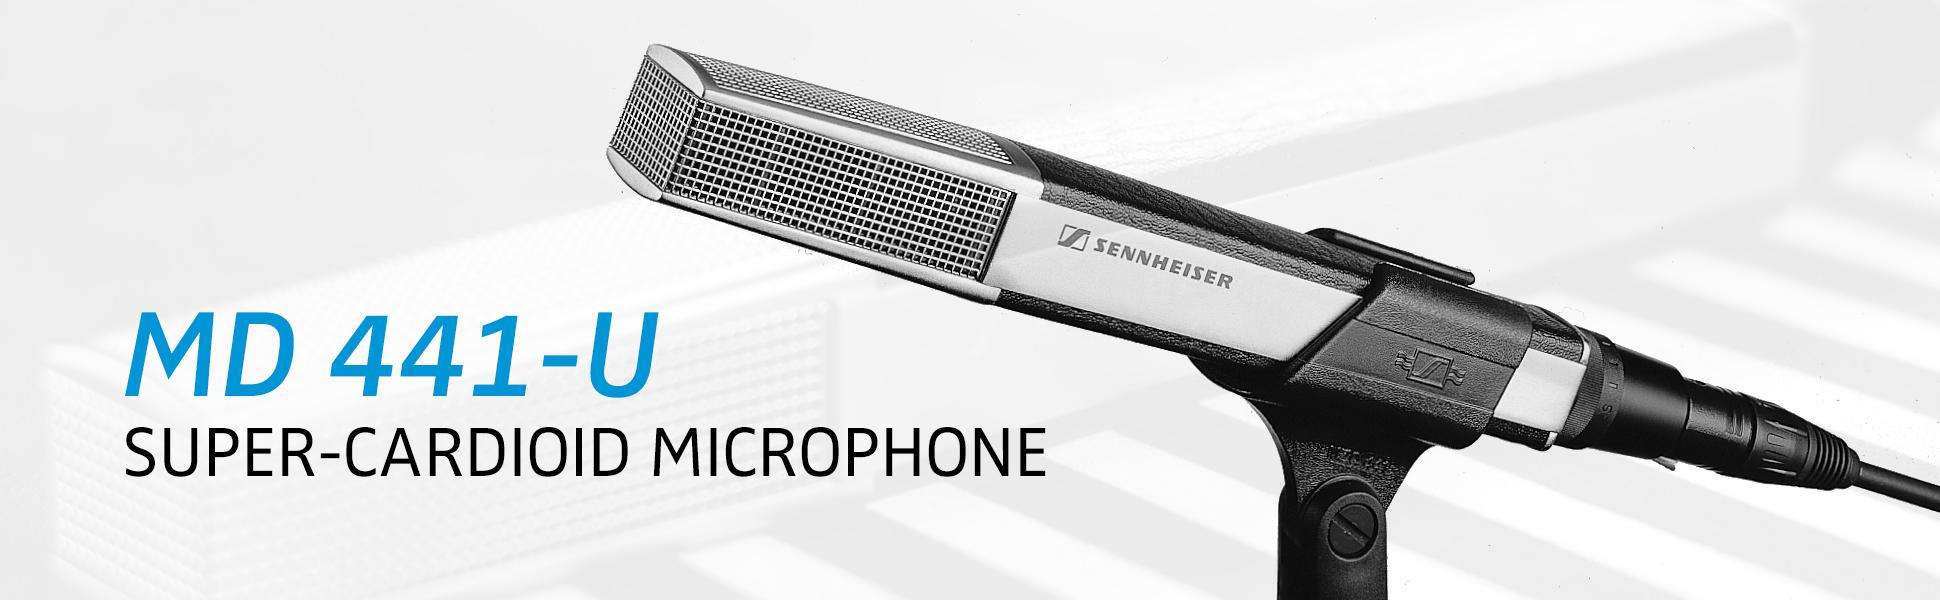 Amazon Com Sennheiser Md U Versatile Dynamic Super Cardioid